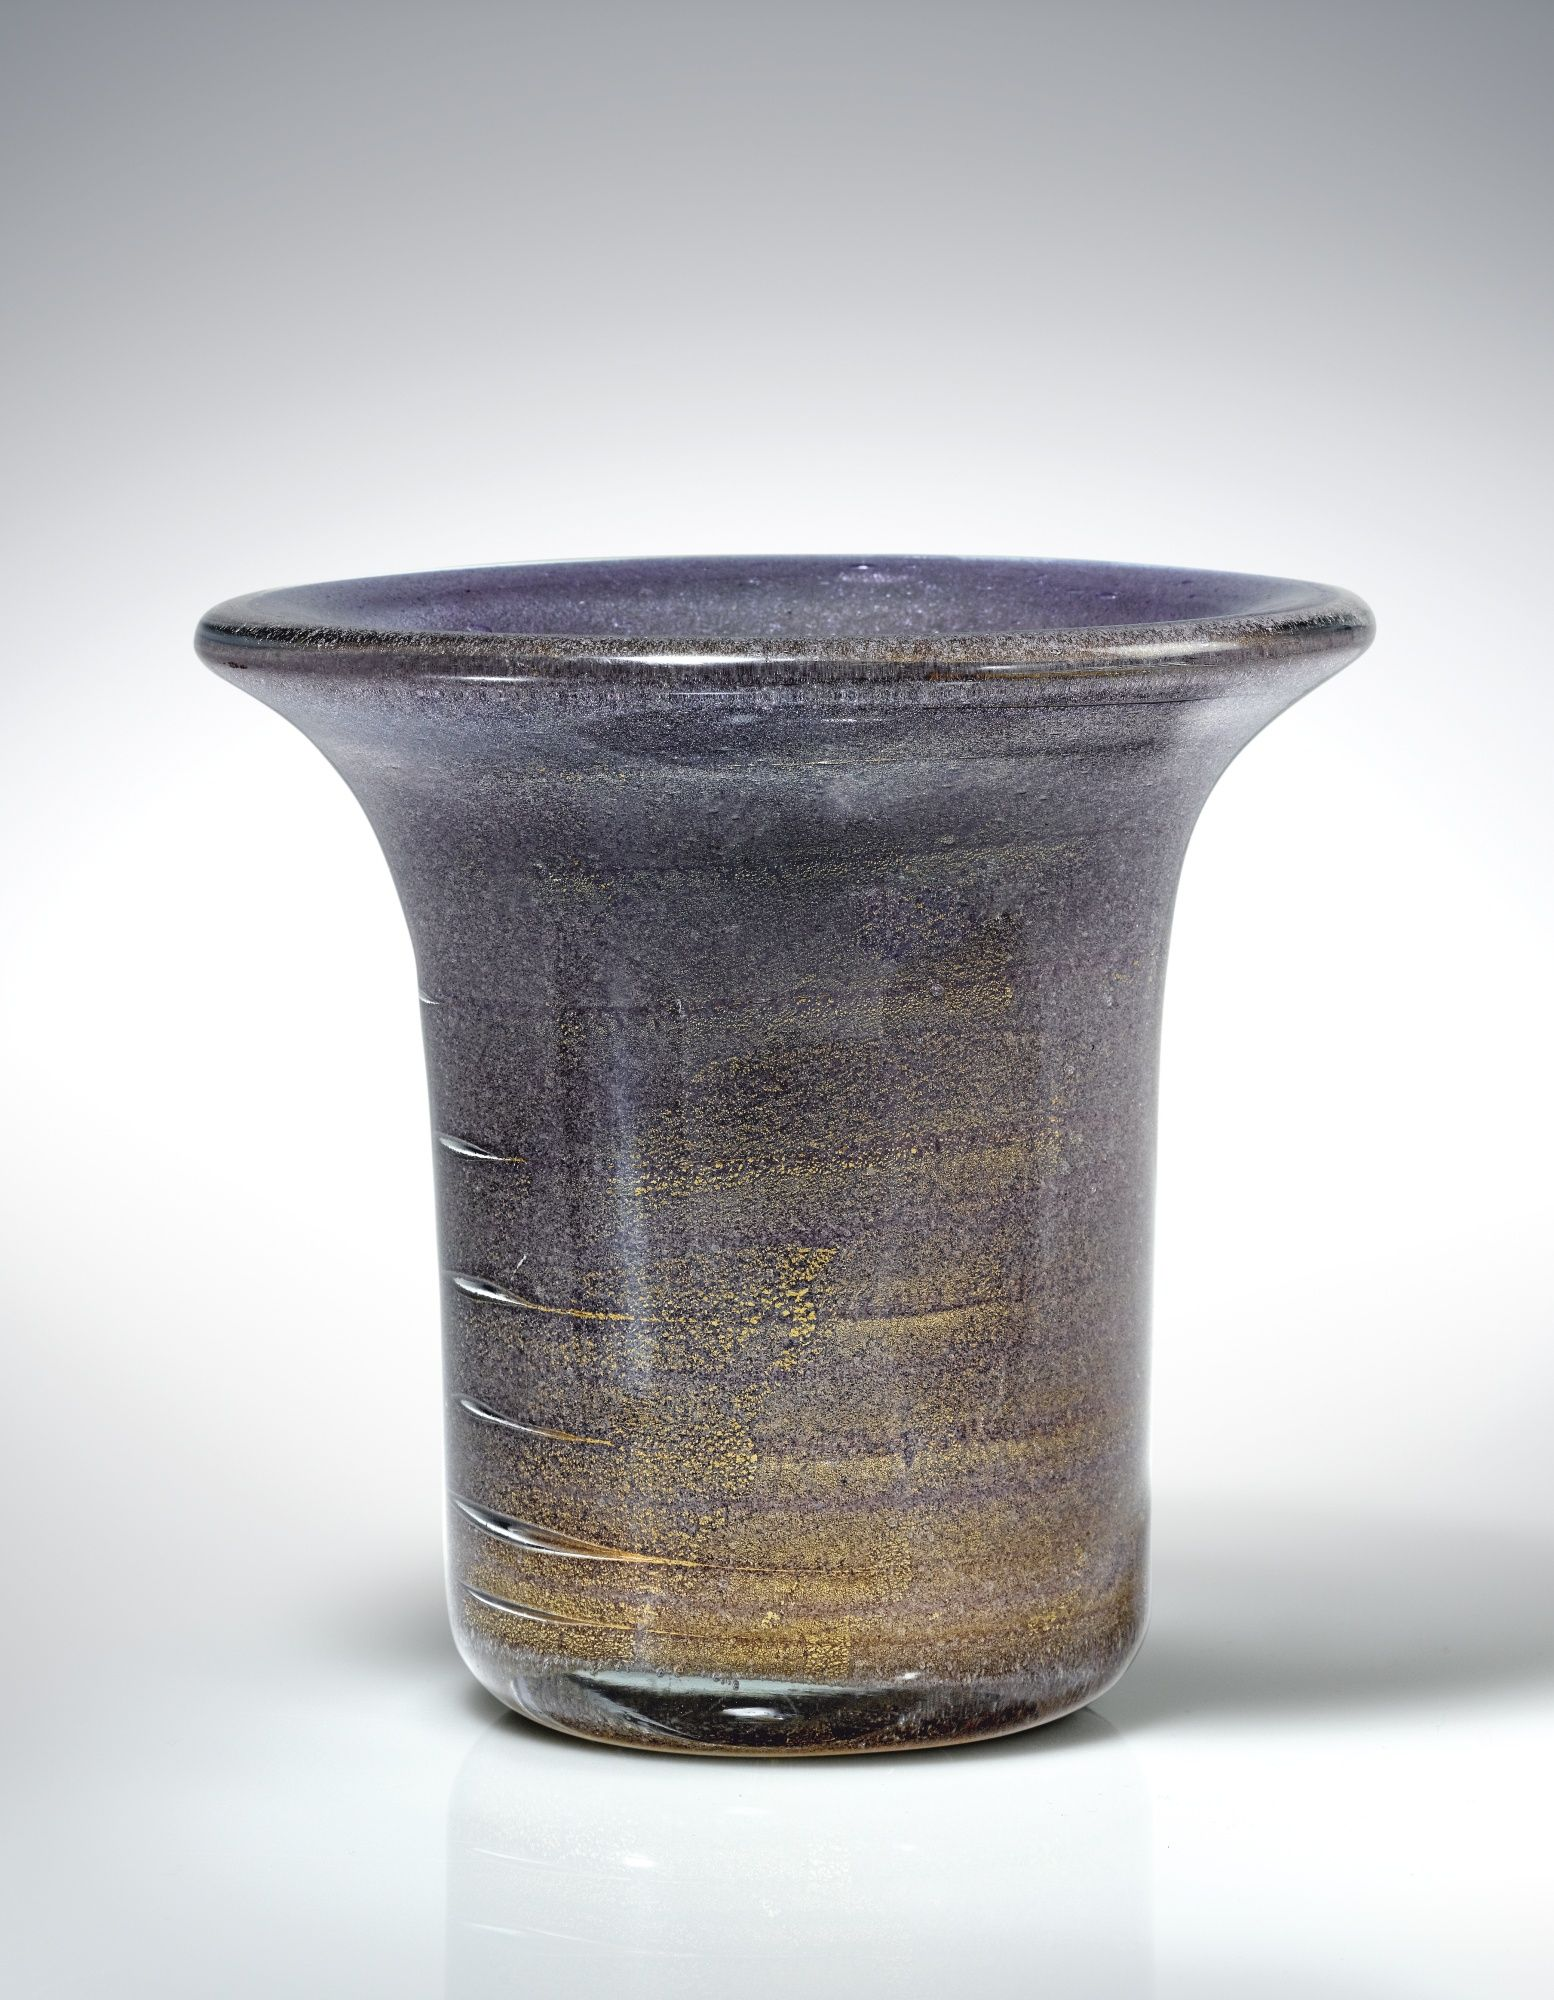 Carlo scarpa sommerso vase model no 3523 with acid stamp venini carlo scarpa sommerso vase model no 3523 with acid stamp veninimurano floridaeventfo Image collections